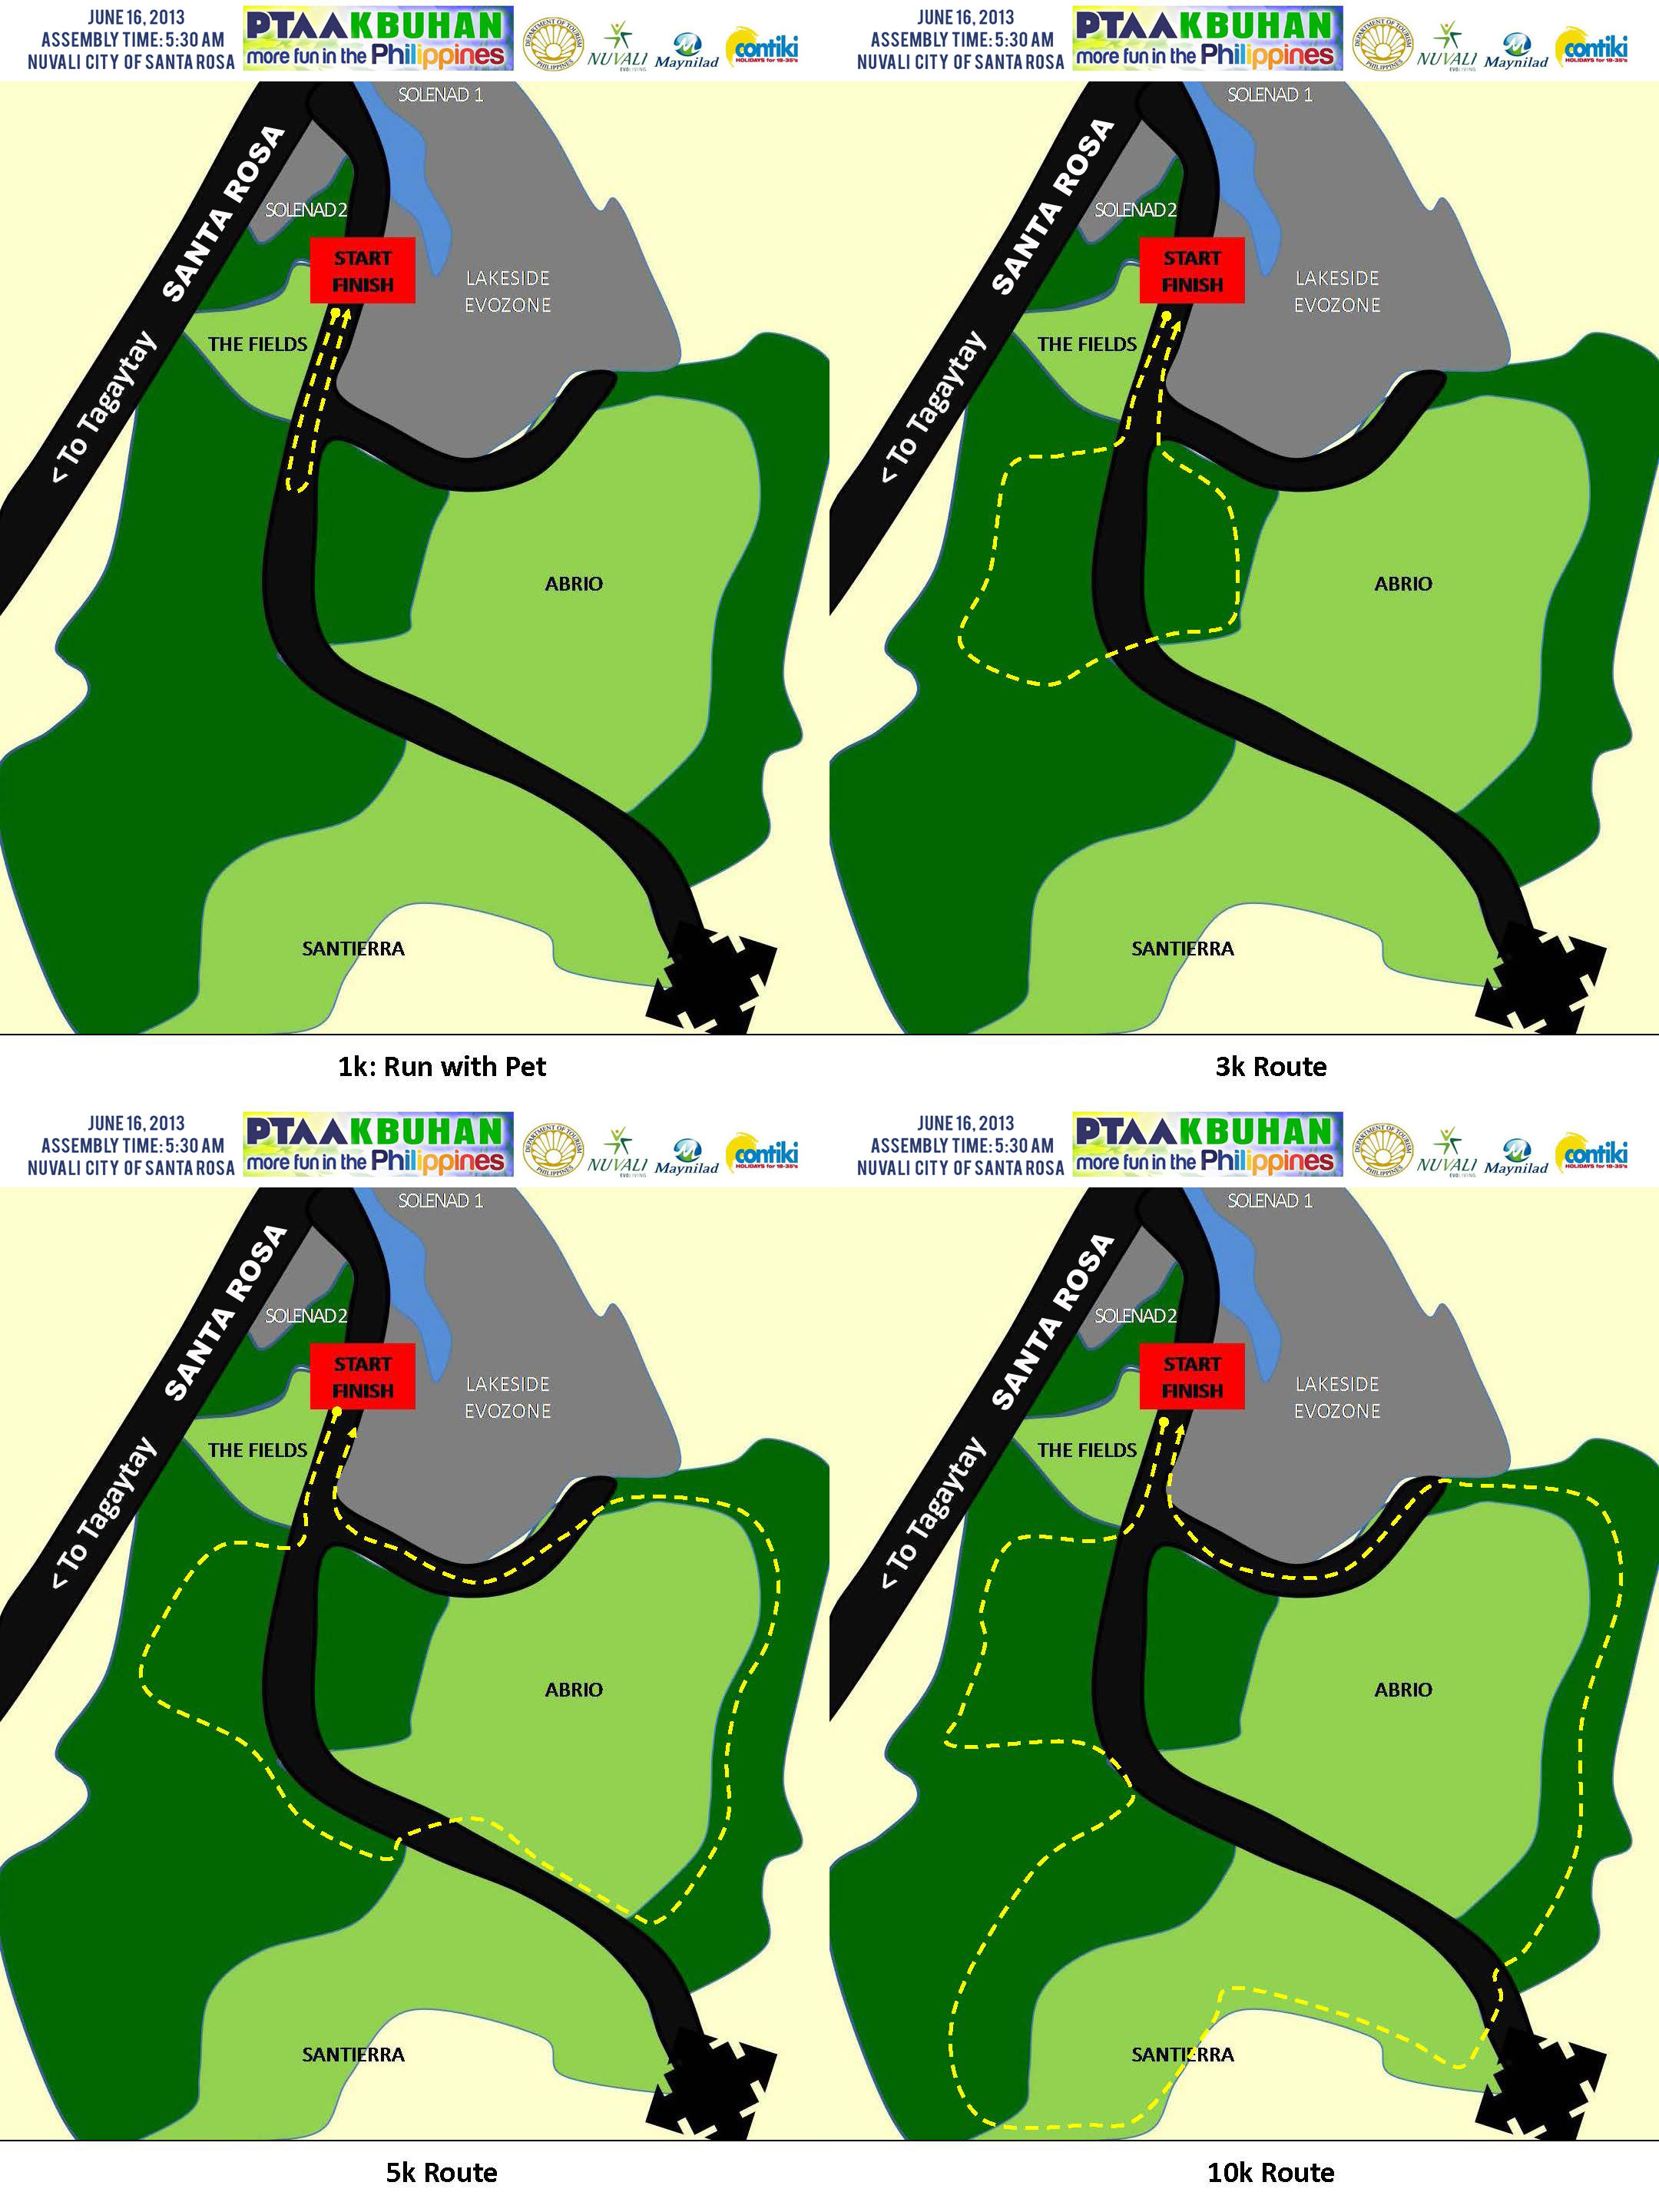 ptaakbuhan-2013-route-map